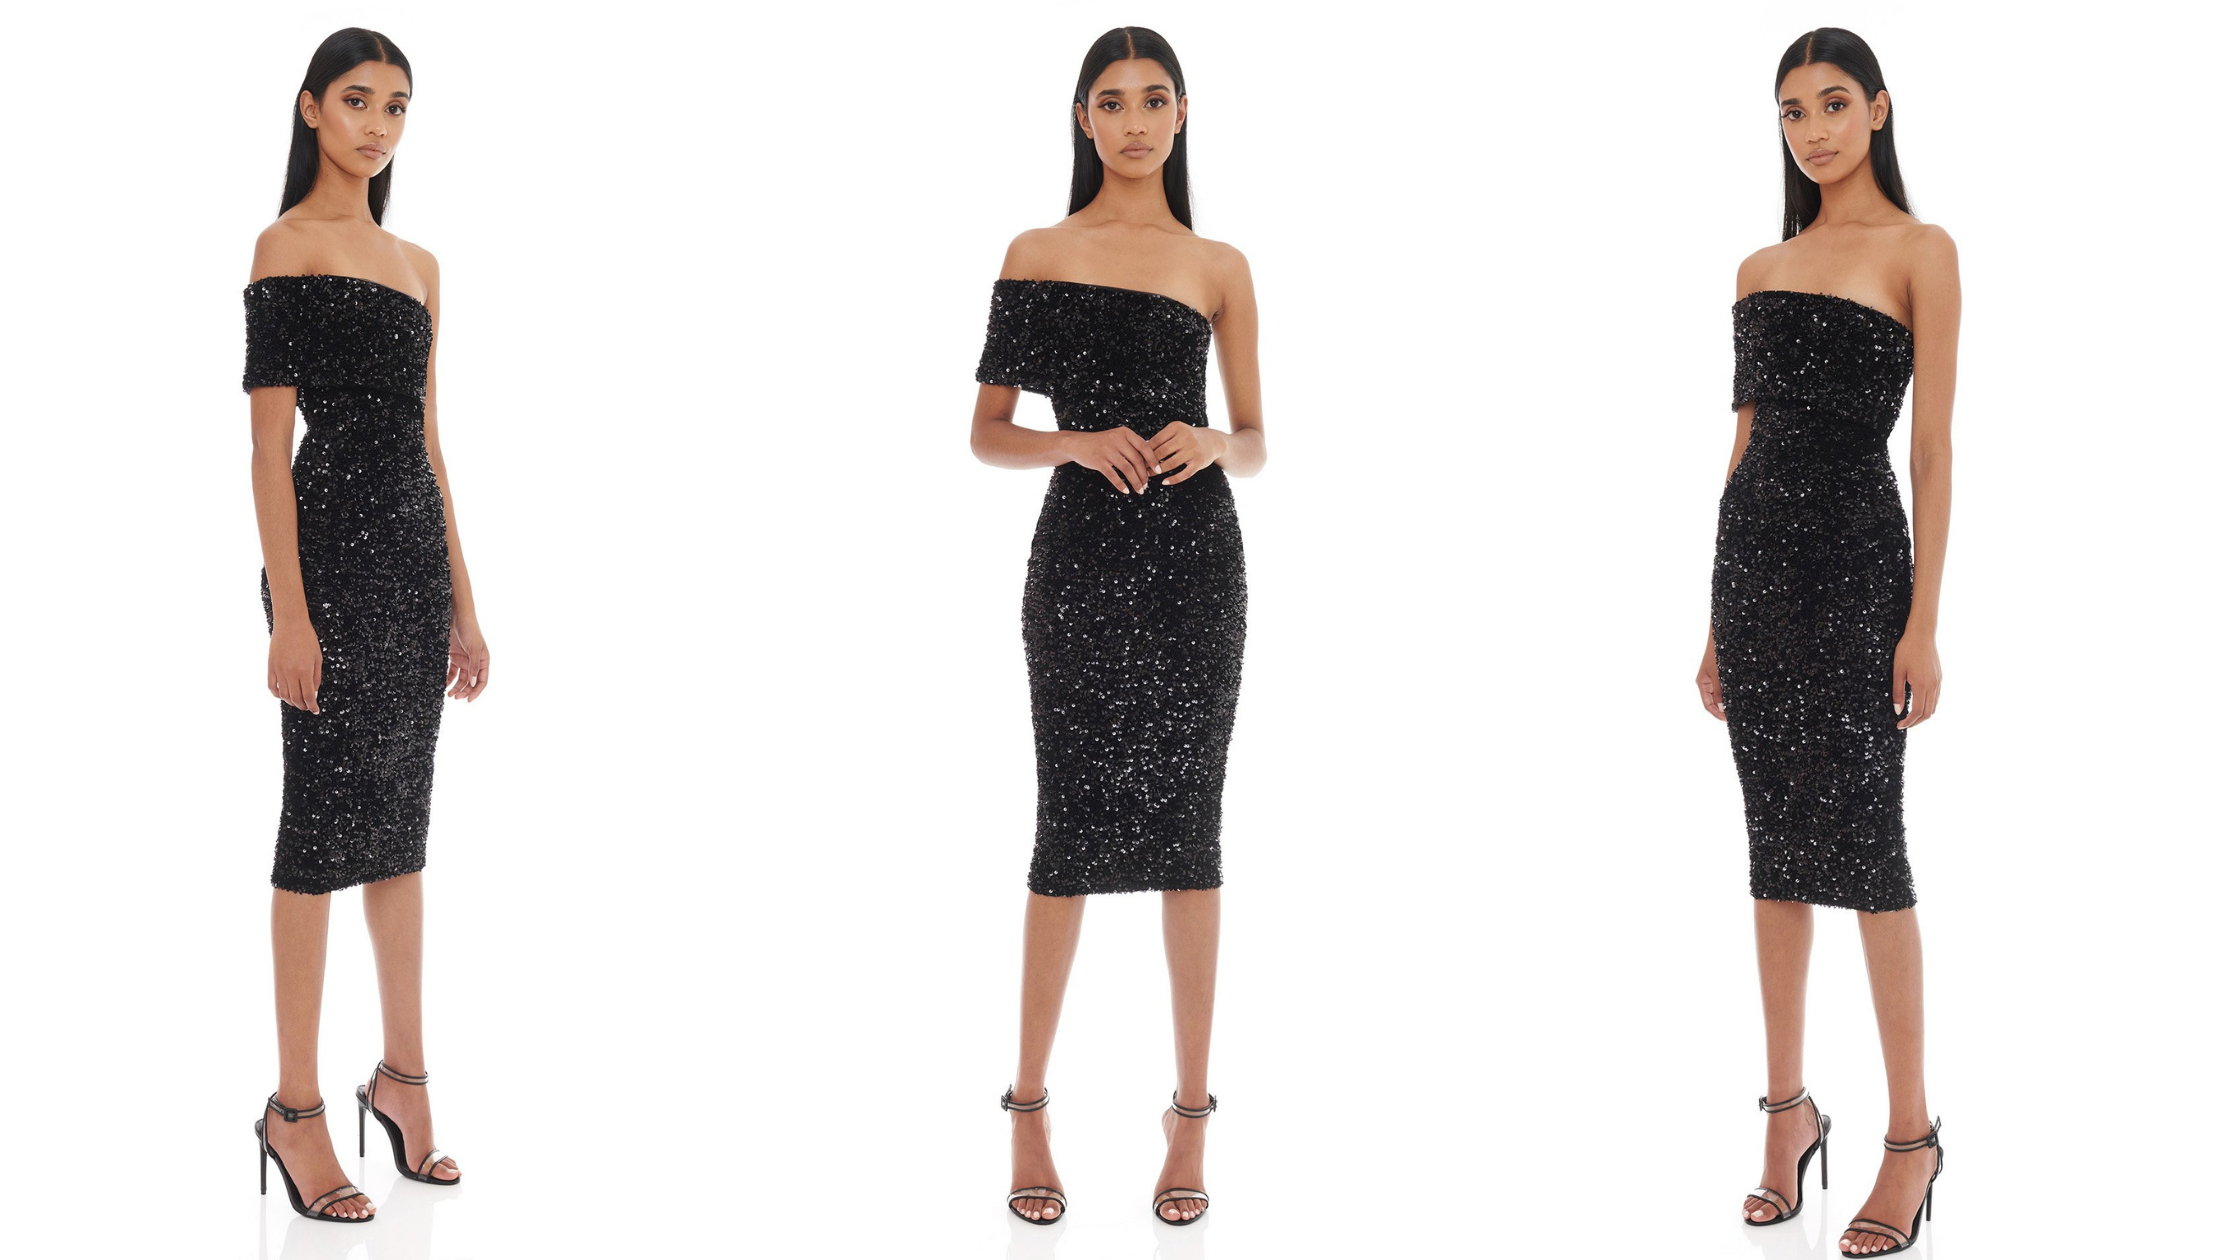 https://zetoni.com.au/collections/must-have-sparkly-and-sexy-outfits/products/alyssa-dress-black